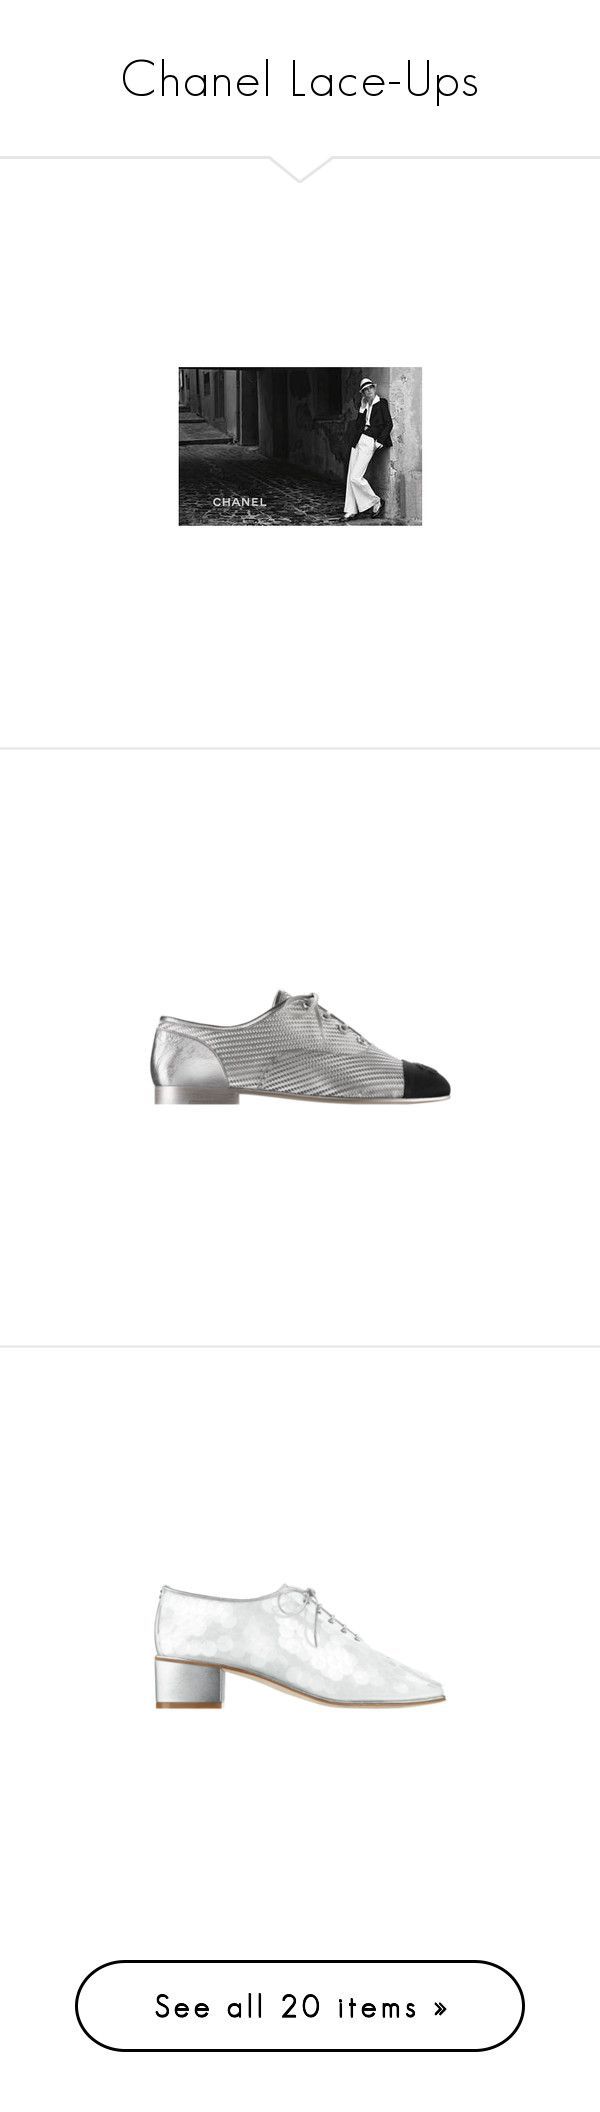 """""""Chanel Lace-Ups"""" by karalaska ❤ liked on Polyvore featuring shoes, black laced shoes, black lace up shoes, laced up shoes, laced shoes, kohl shoes, chanel footwear, chanel, lizard shoes and black patent shoes"""